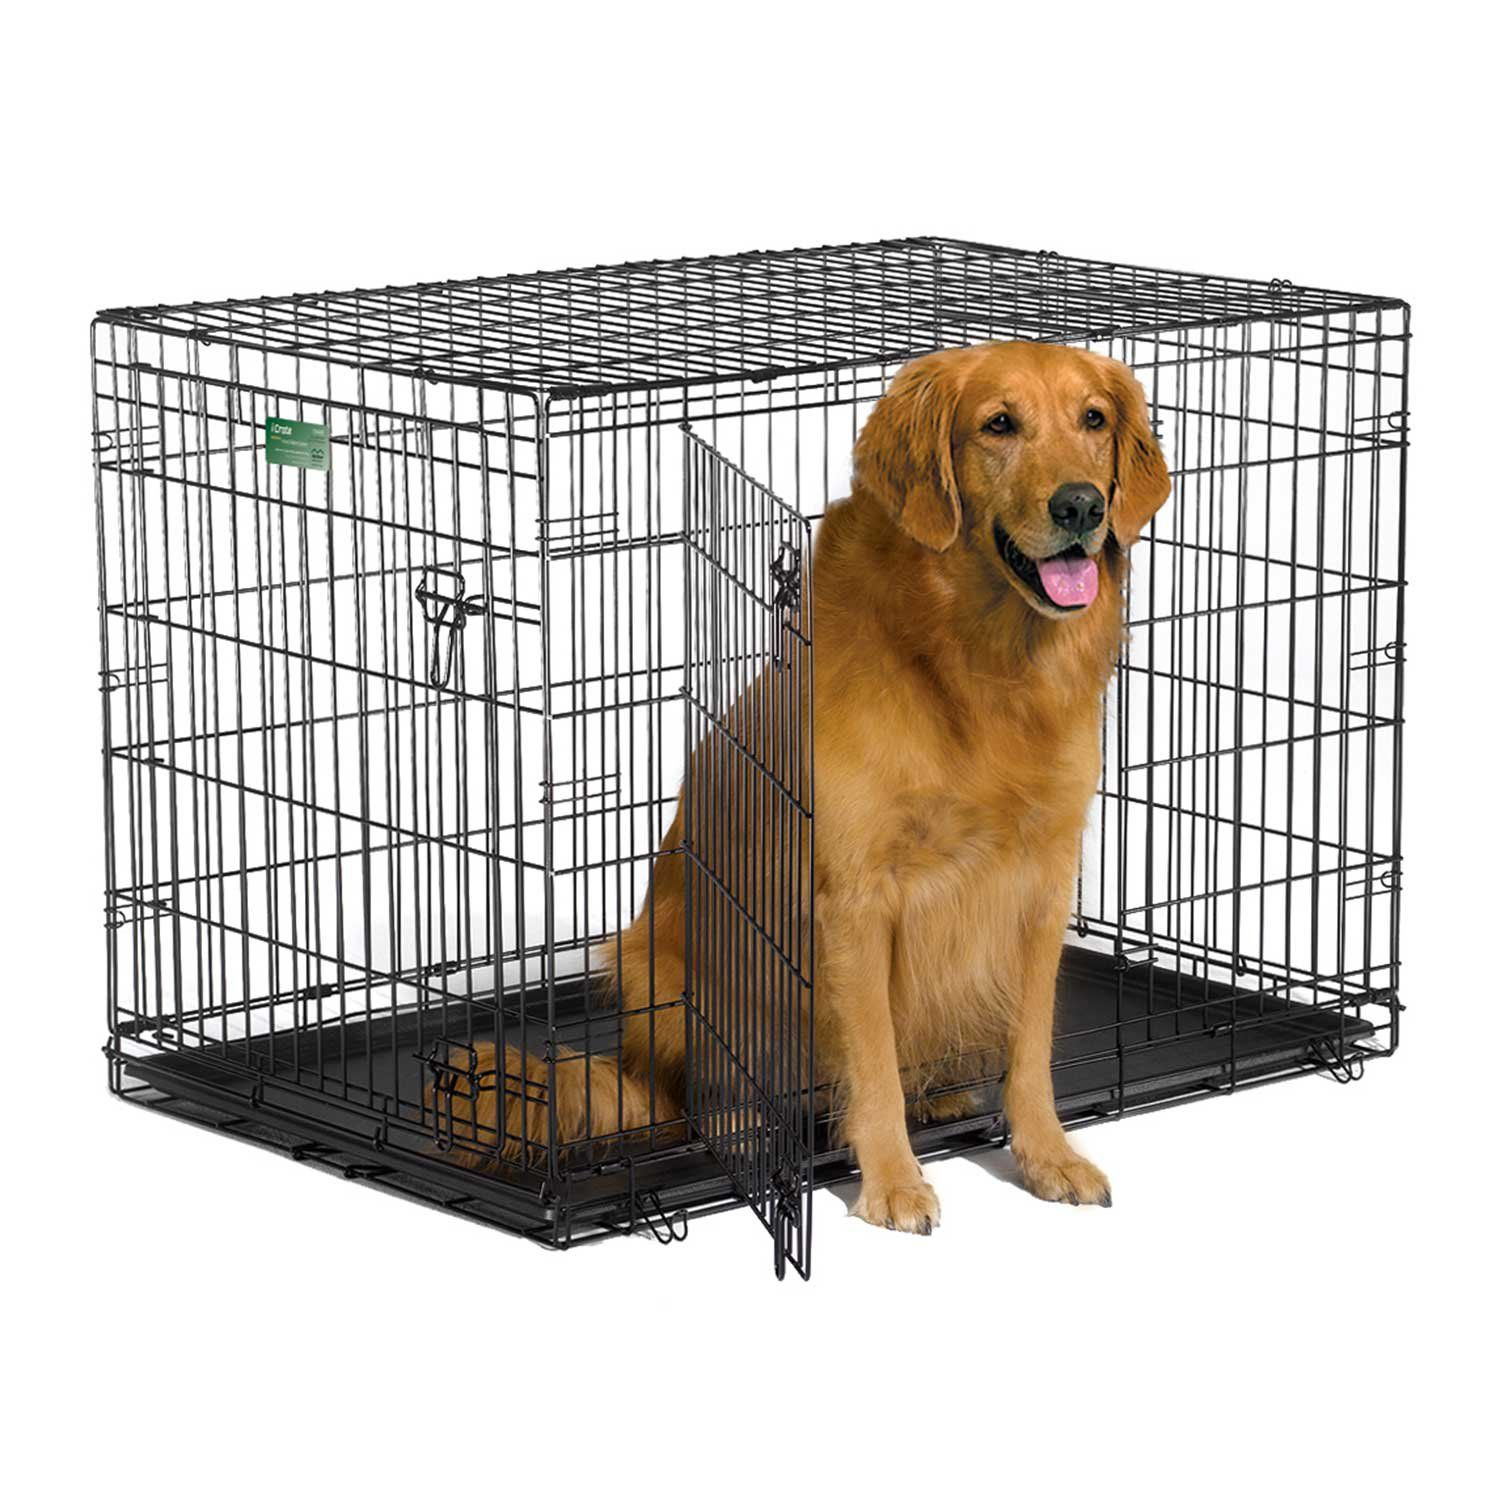 The Dog Crate Comes To You Equipped With Every Feature You Can Think Of Double Door A Composite Plastic Pan Plastic Carr Wire Dog Crates Dog Cages Dog Crate